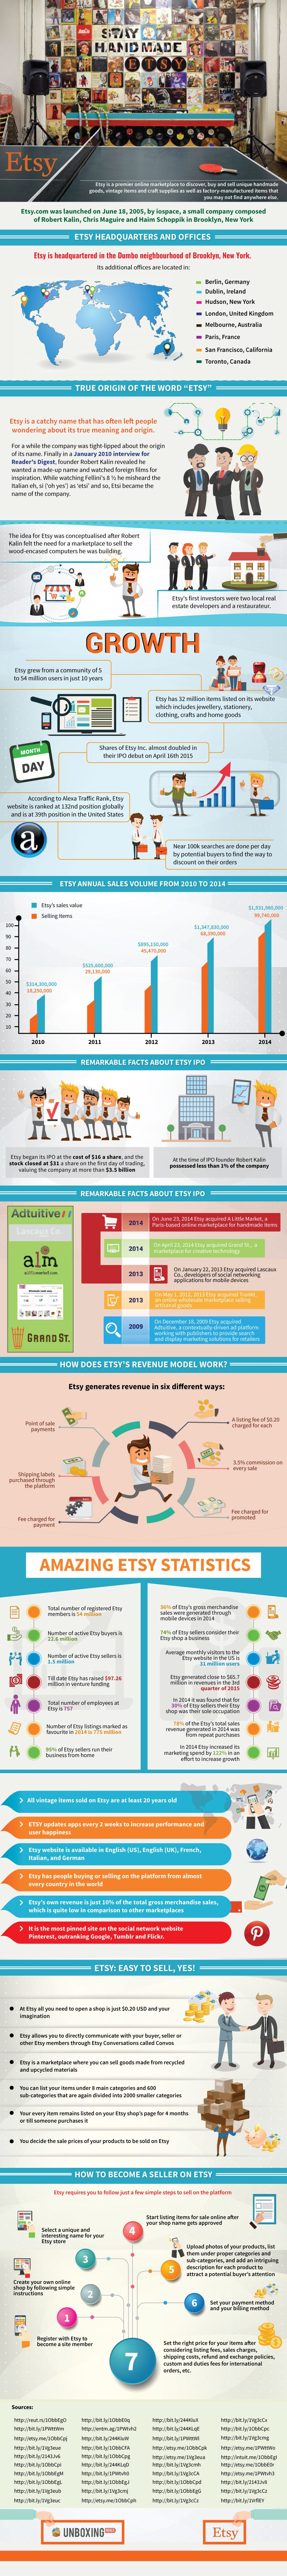 Interesting Facts & Stats about ETSY